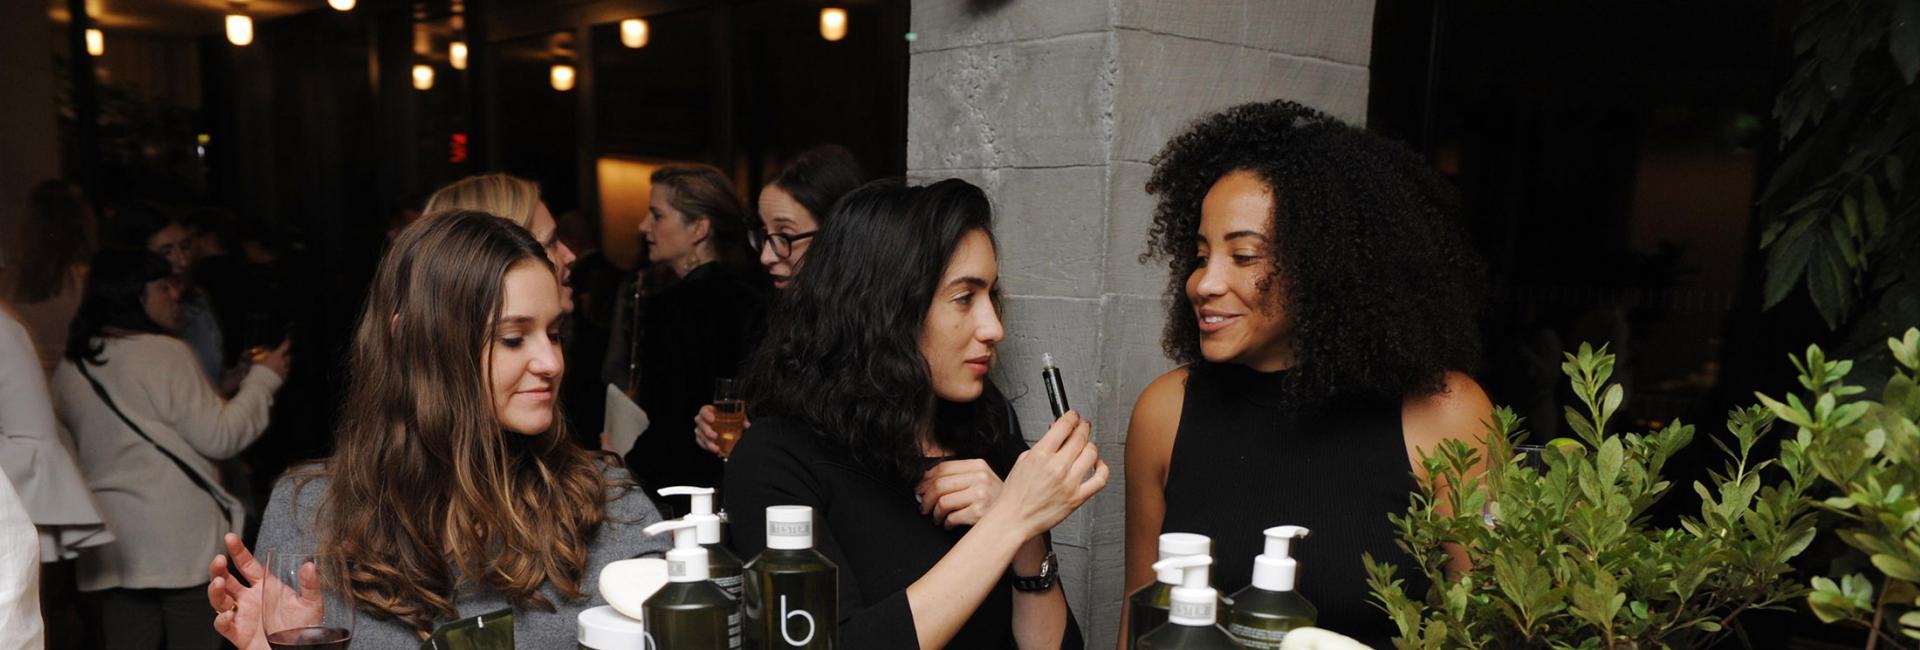 woman sniff skincare products at 1 hotel brooklyn event